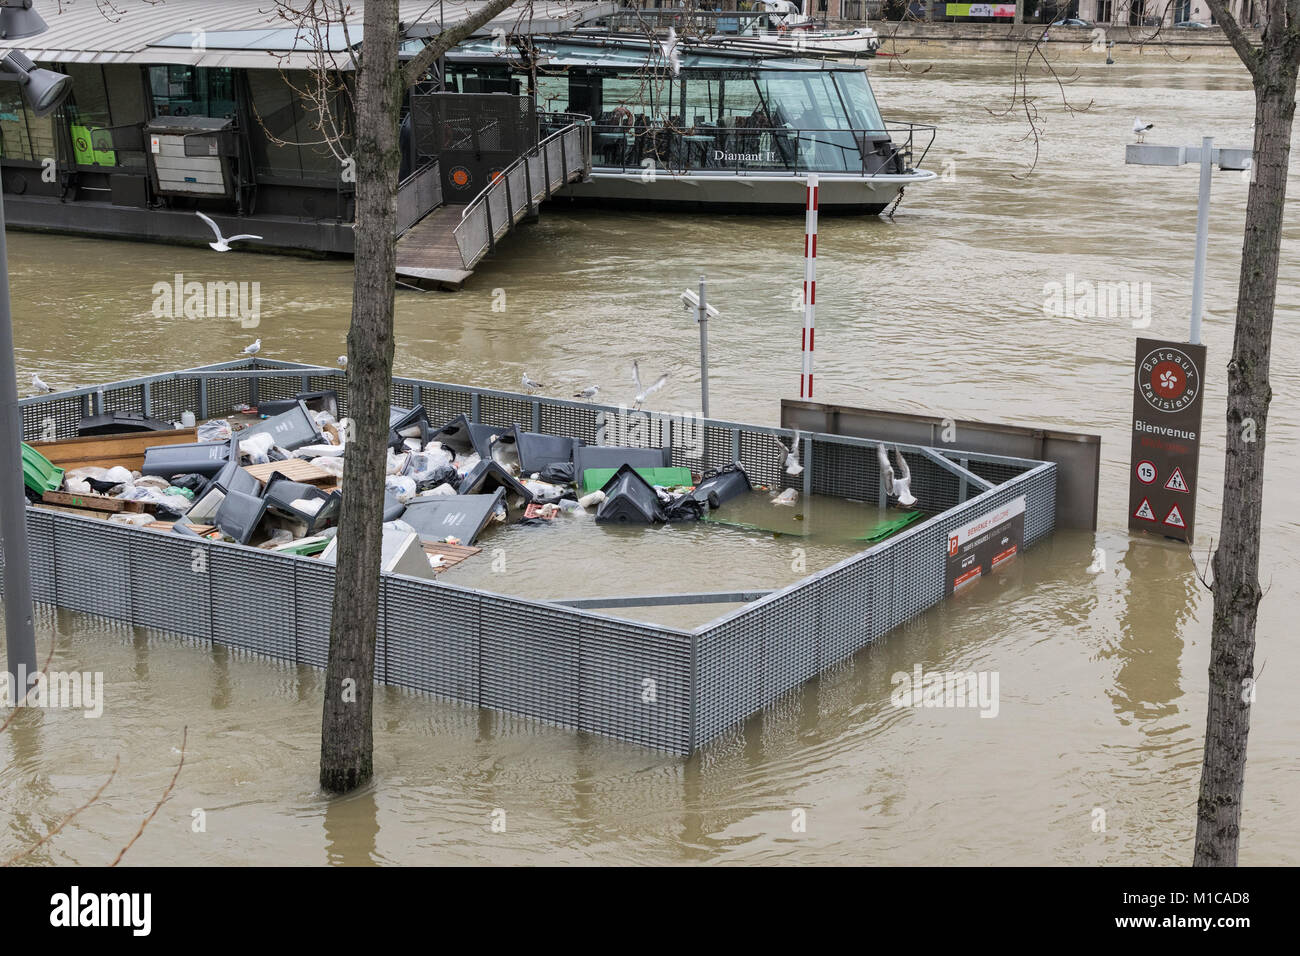 Paris, France. 28th Jan, 2018. Rubbish in rising flood water in Paris, River Seine in flood January 28 2018 Credit: - Stock Image